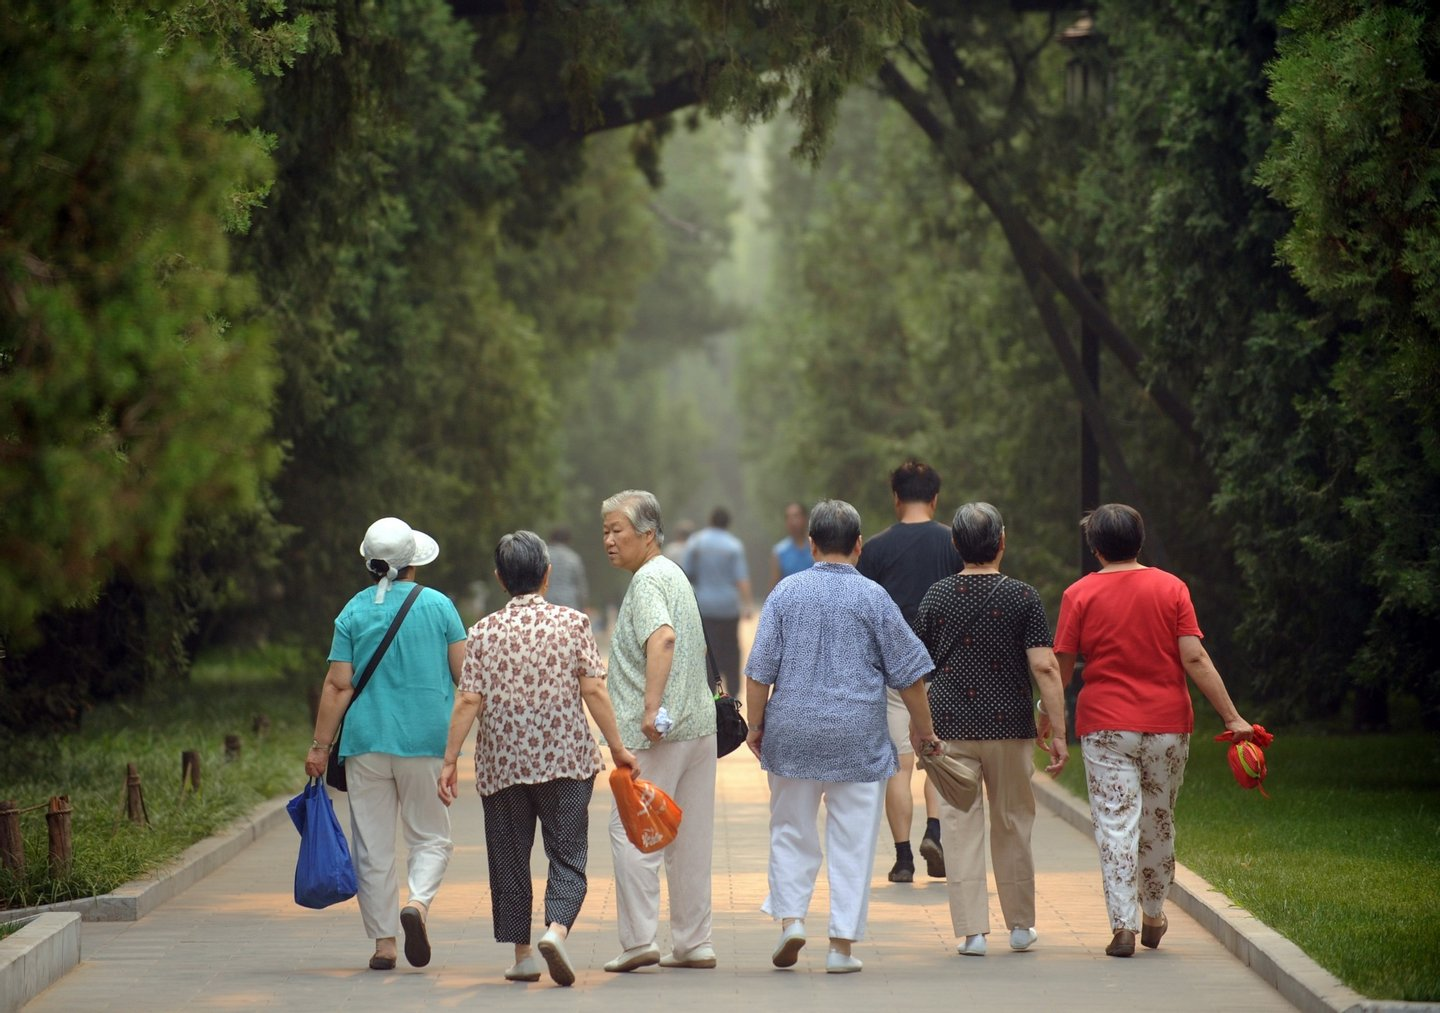 This photo taken on June 28, 2011 shows elderly women heading for their early morning exercises in Ditan Park in Beijing. China's population is ageing and flocking to cities, according to the latest national census results released recently, showing the world's most populous country now counted at 1.339 billion people. AFP PHOTO / Peter PARKS (Photo credit should read PETER PARKS/AFP/Getty Images)